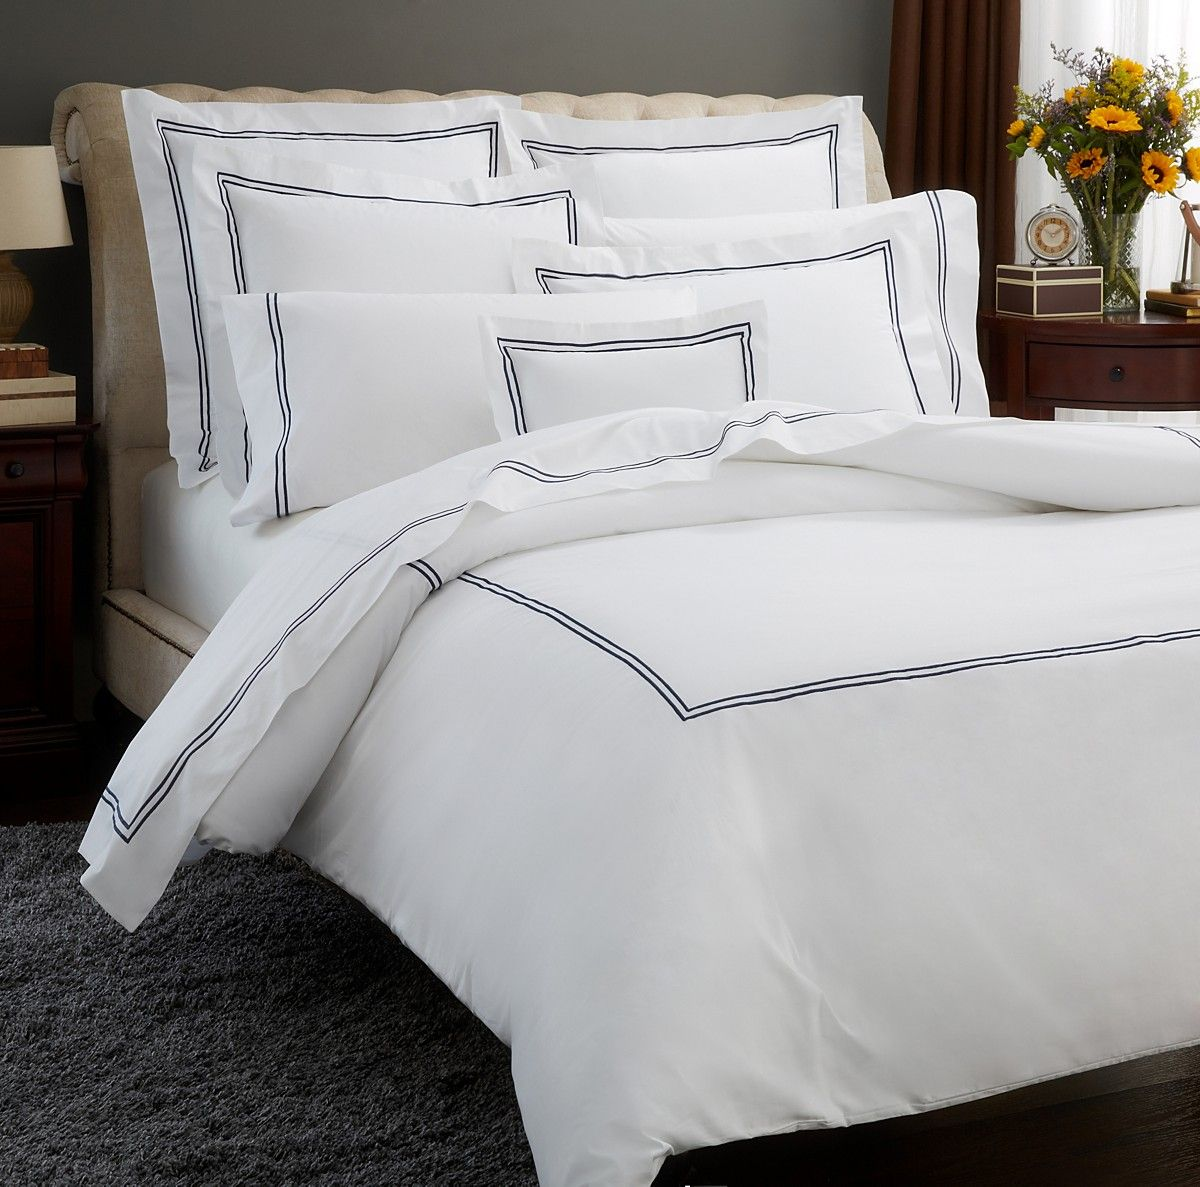 Best Kamash Offers High Quality Luxury Hotel Bed Linens That 400 x 300